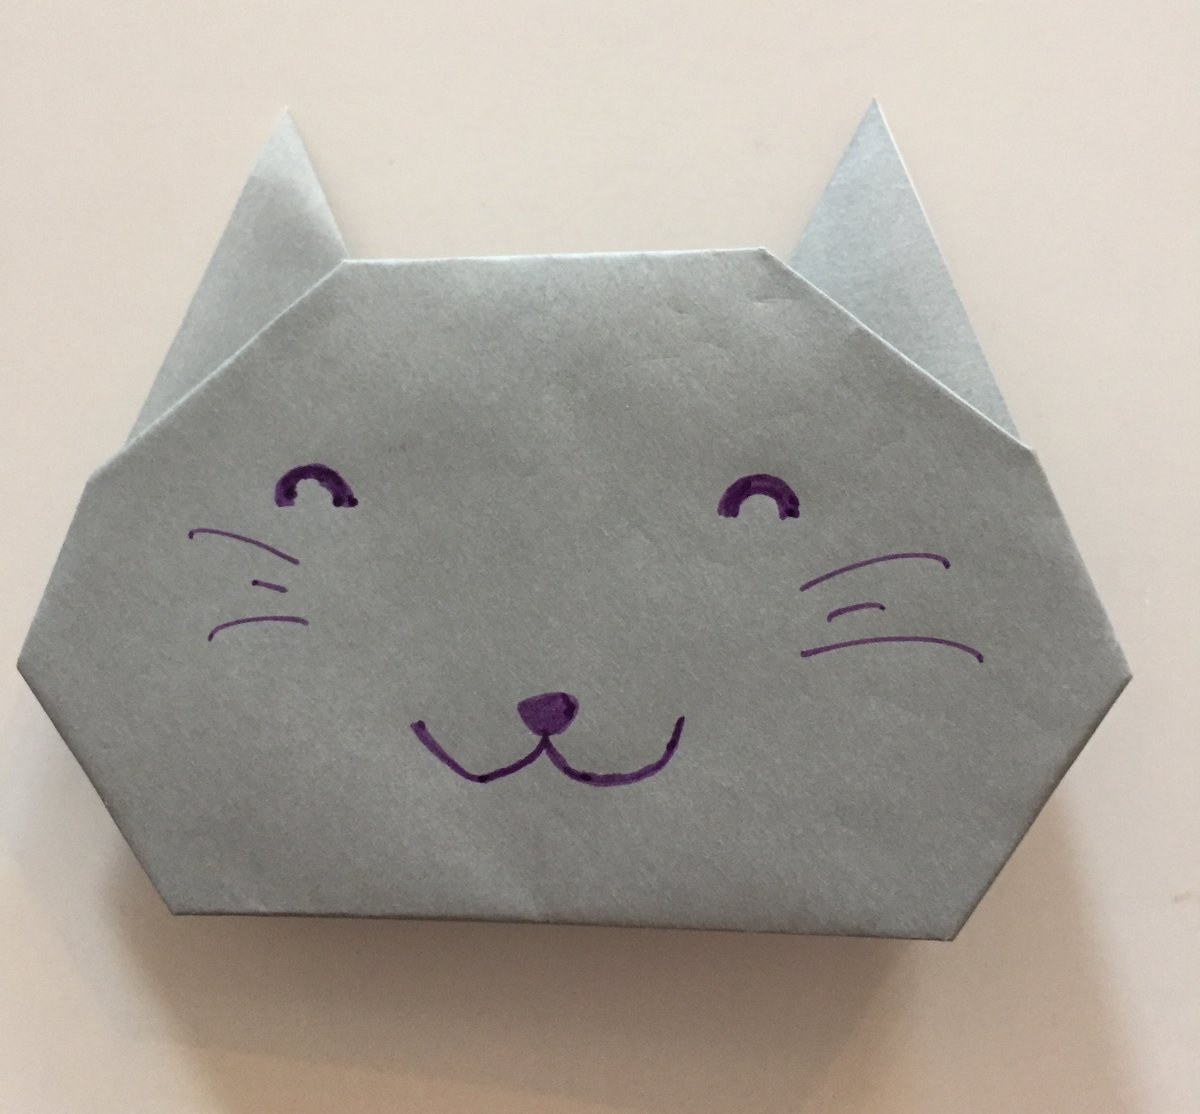 Origami cat box | DIY back to school paper crafts | Cute Cat shape ... | 1114x1200